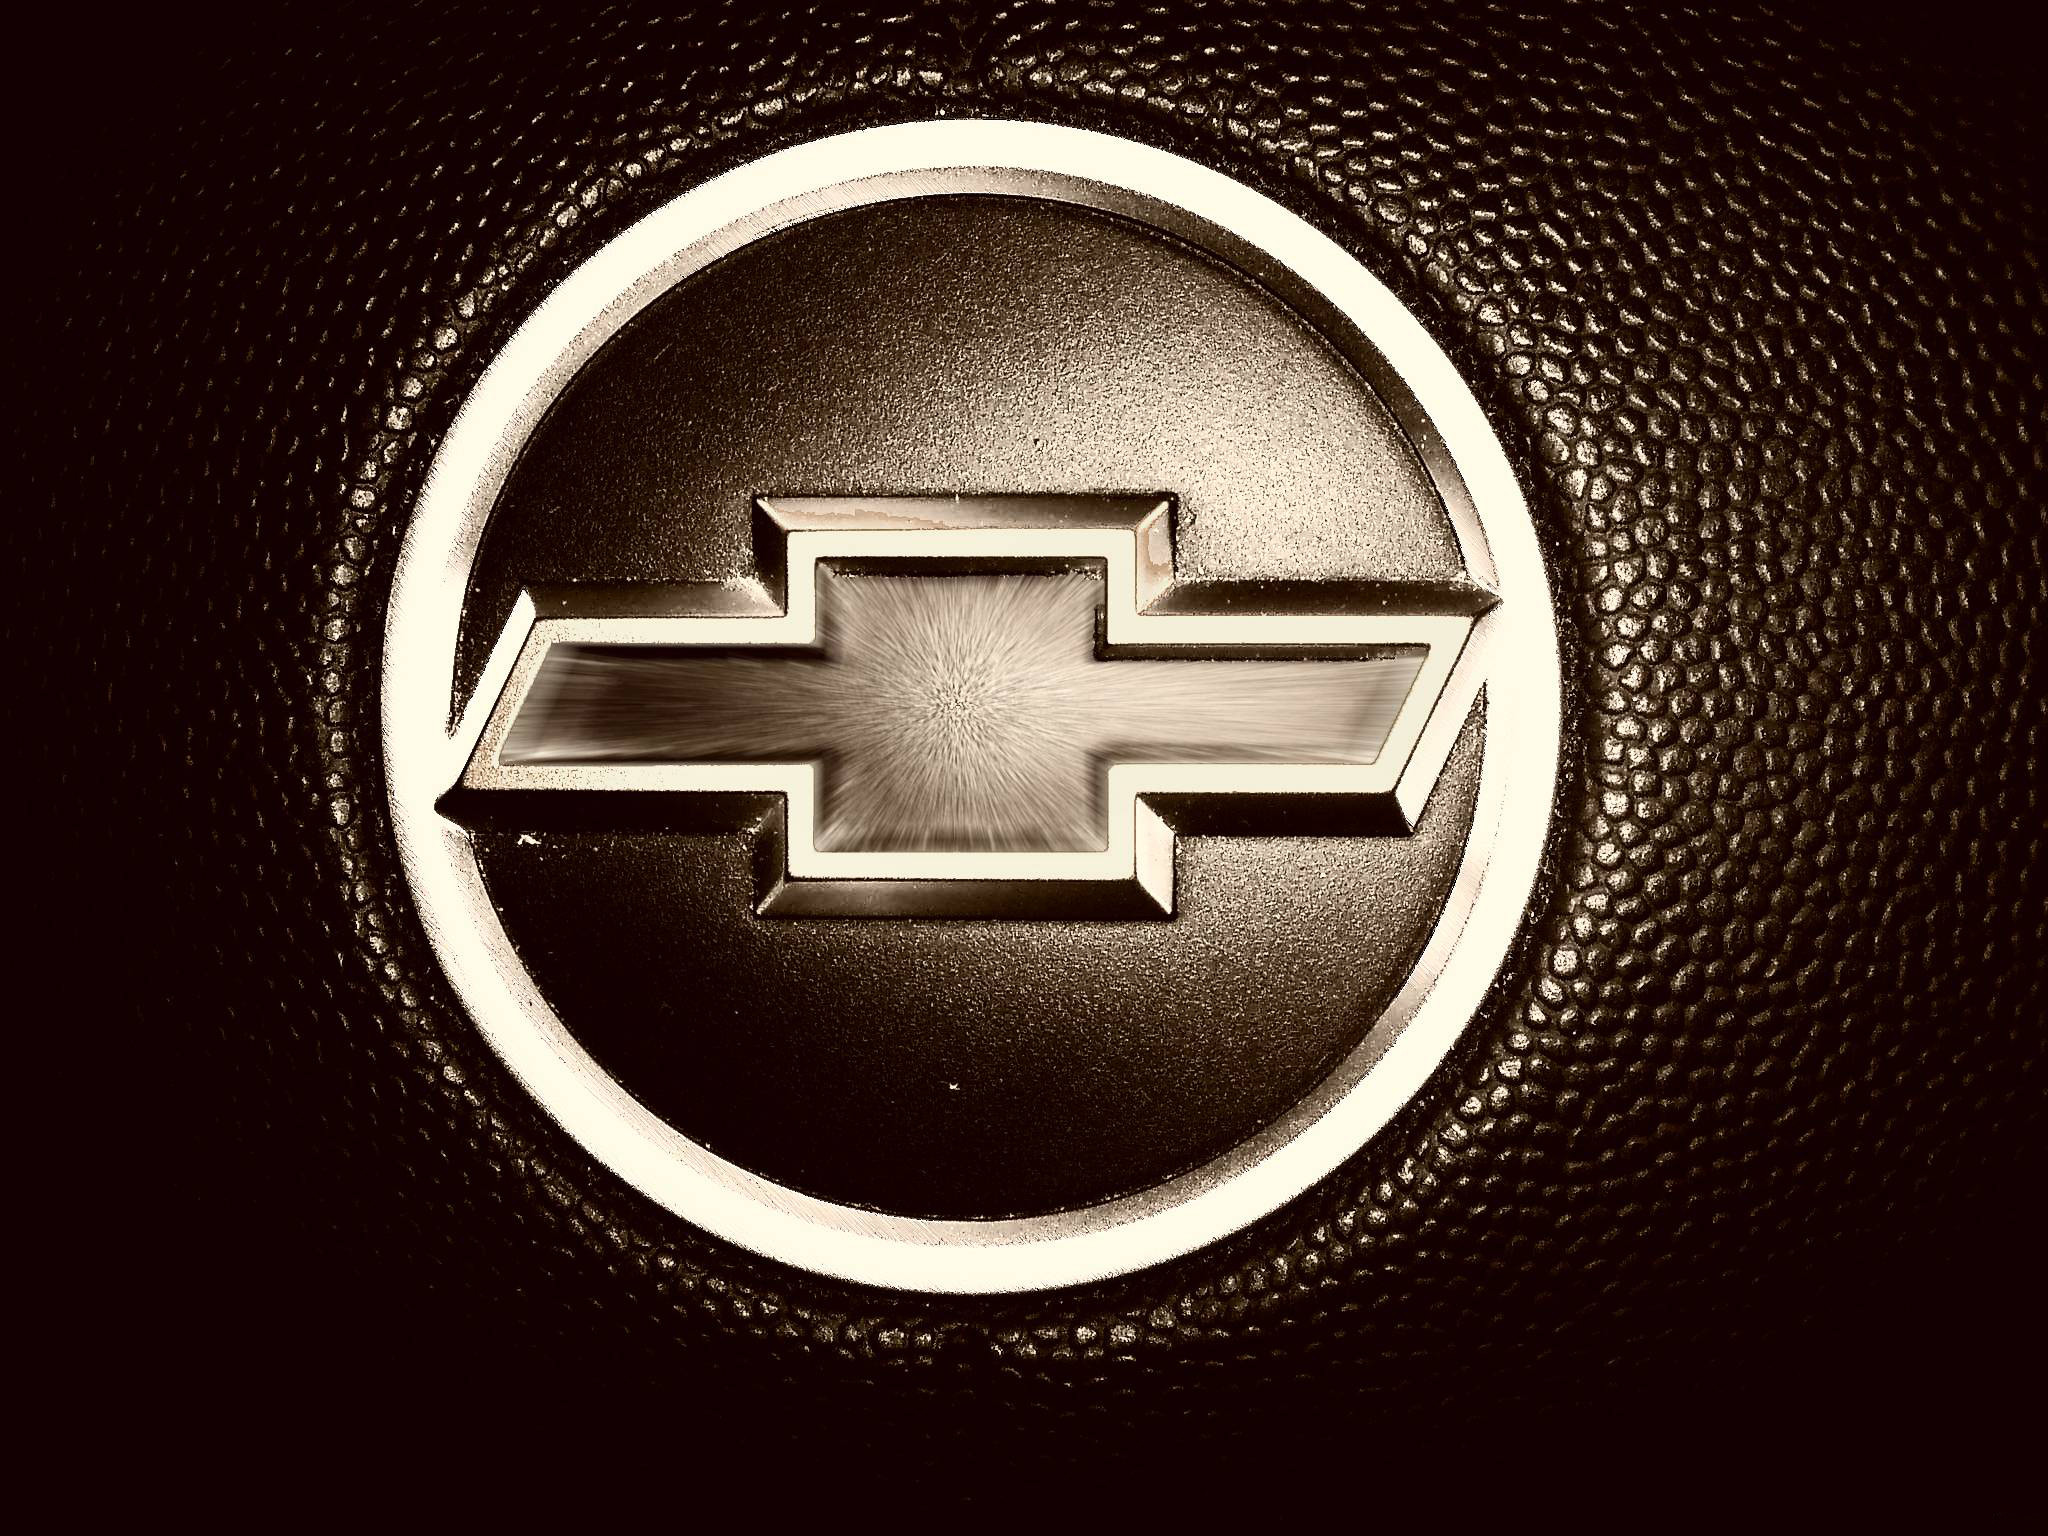 chevy logo wallpaper – Google Search | Vehicle | Pinterest | Chevy .